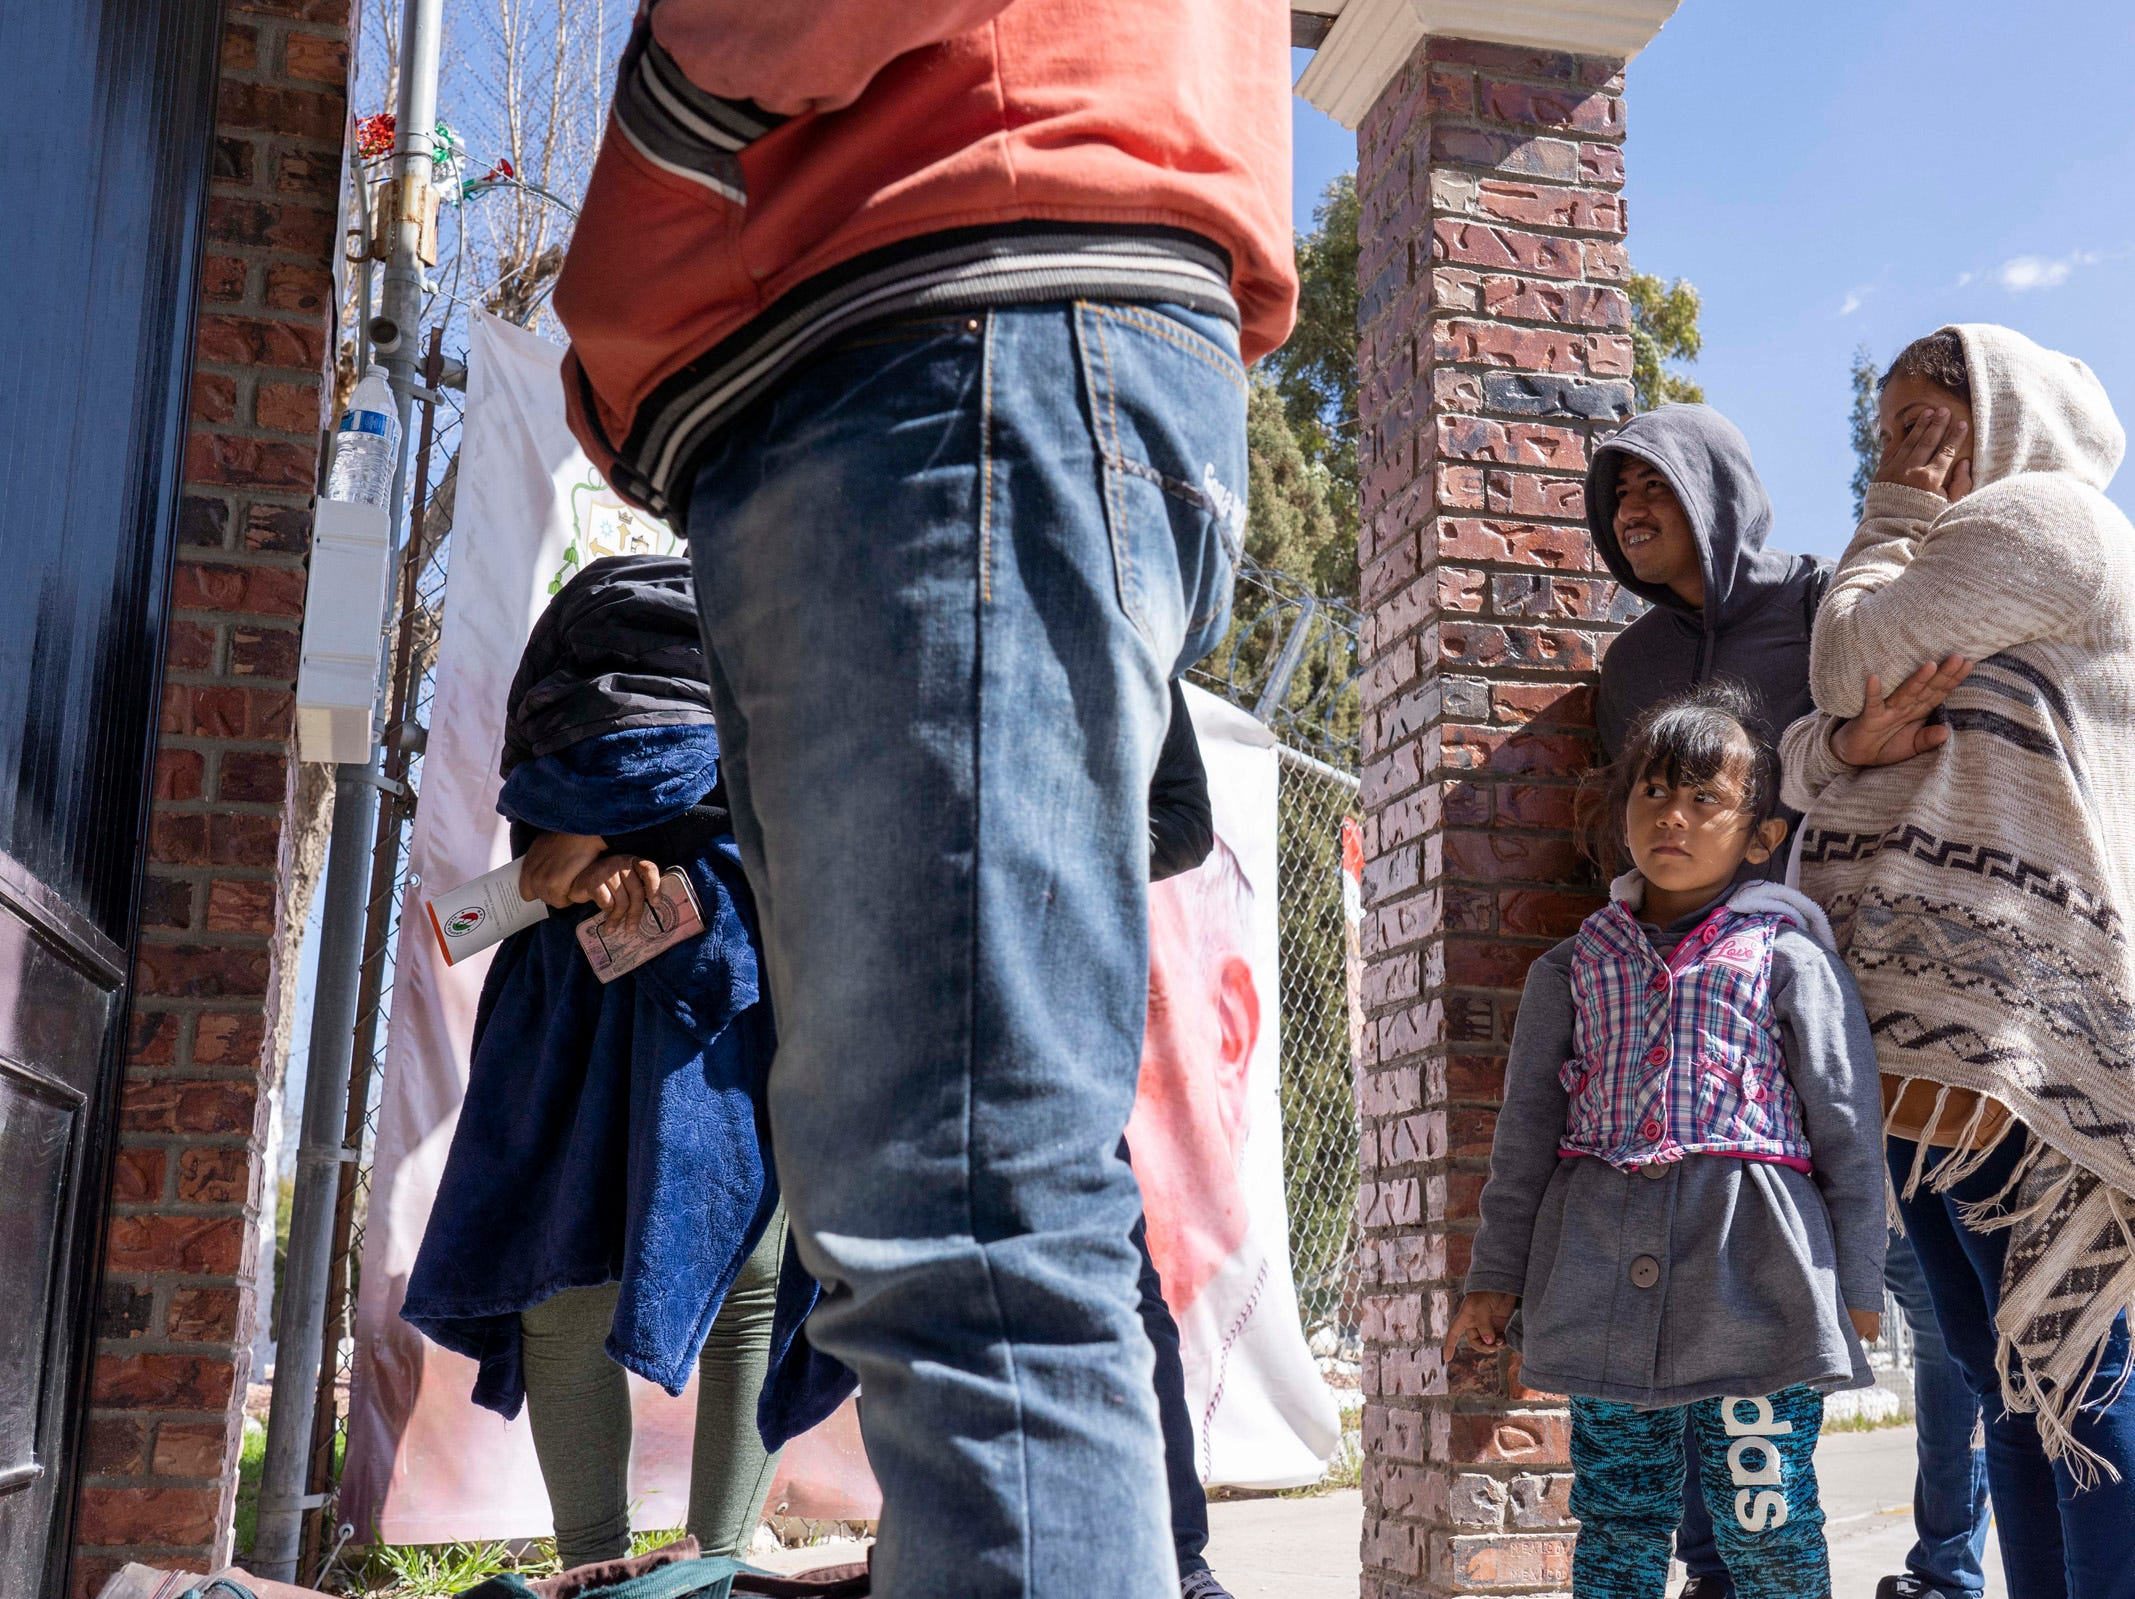 2/11/19 11:30:14 AM -- El Paso, TX, U.S.A  -- On Monday morning, dozen newly-arrived migrants from around Mexico and Latin America to the Casa del Migrante, the Catholic-run shelter for migrants located in Ciudad Juarez.  Photo by Nick Oza, Gannett